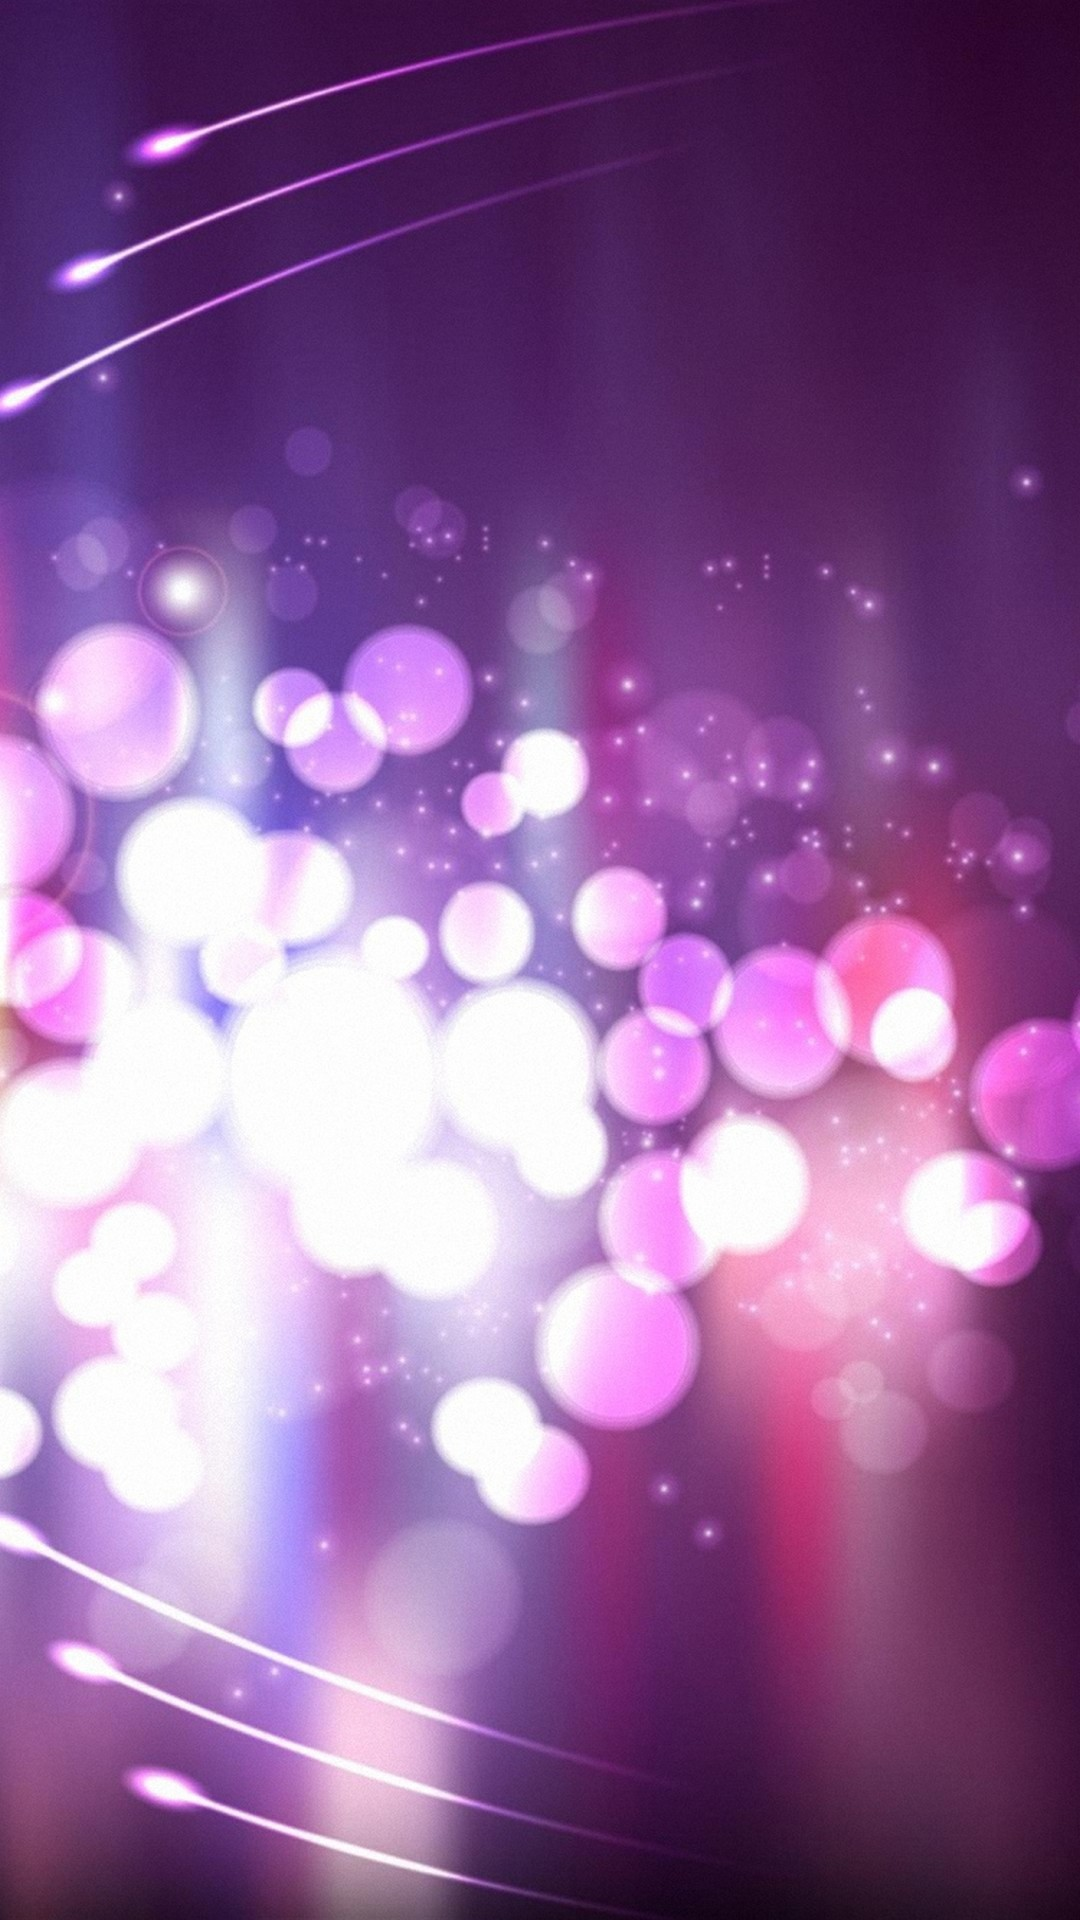 Purple Wallpaper HD